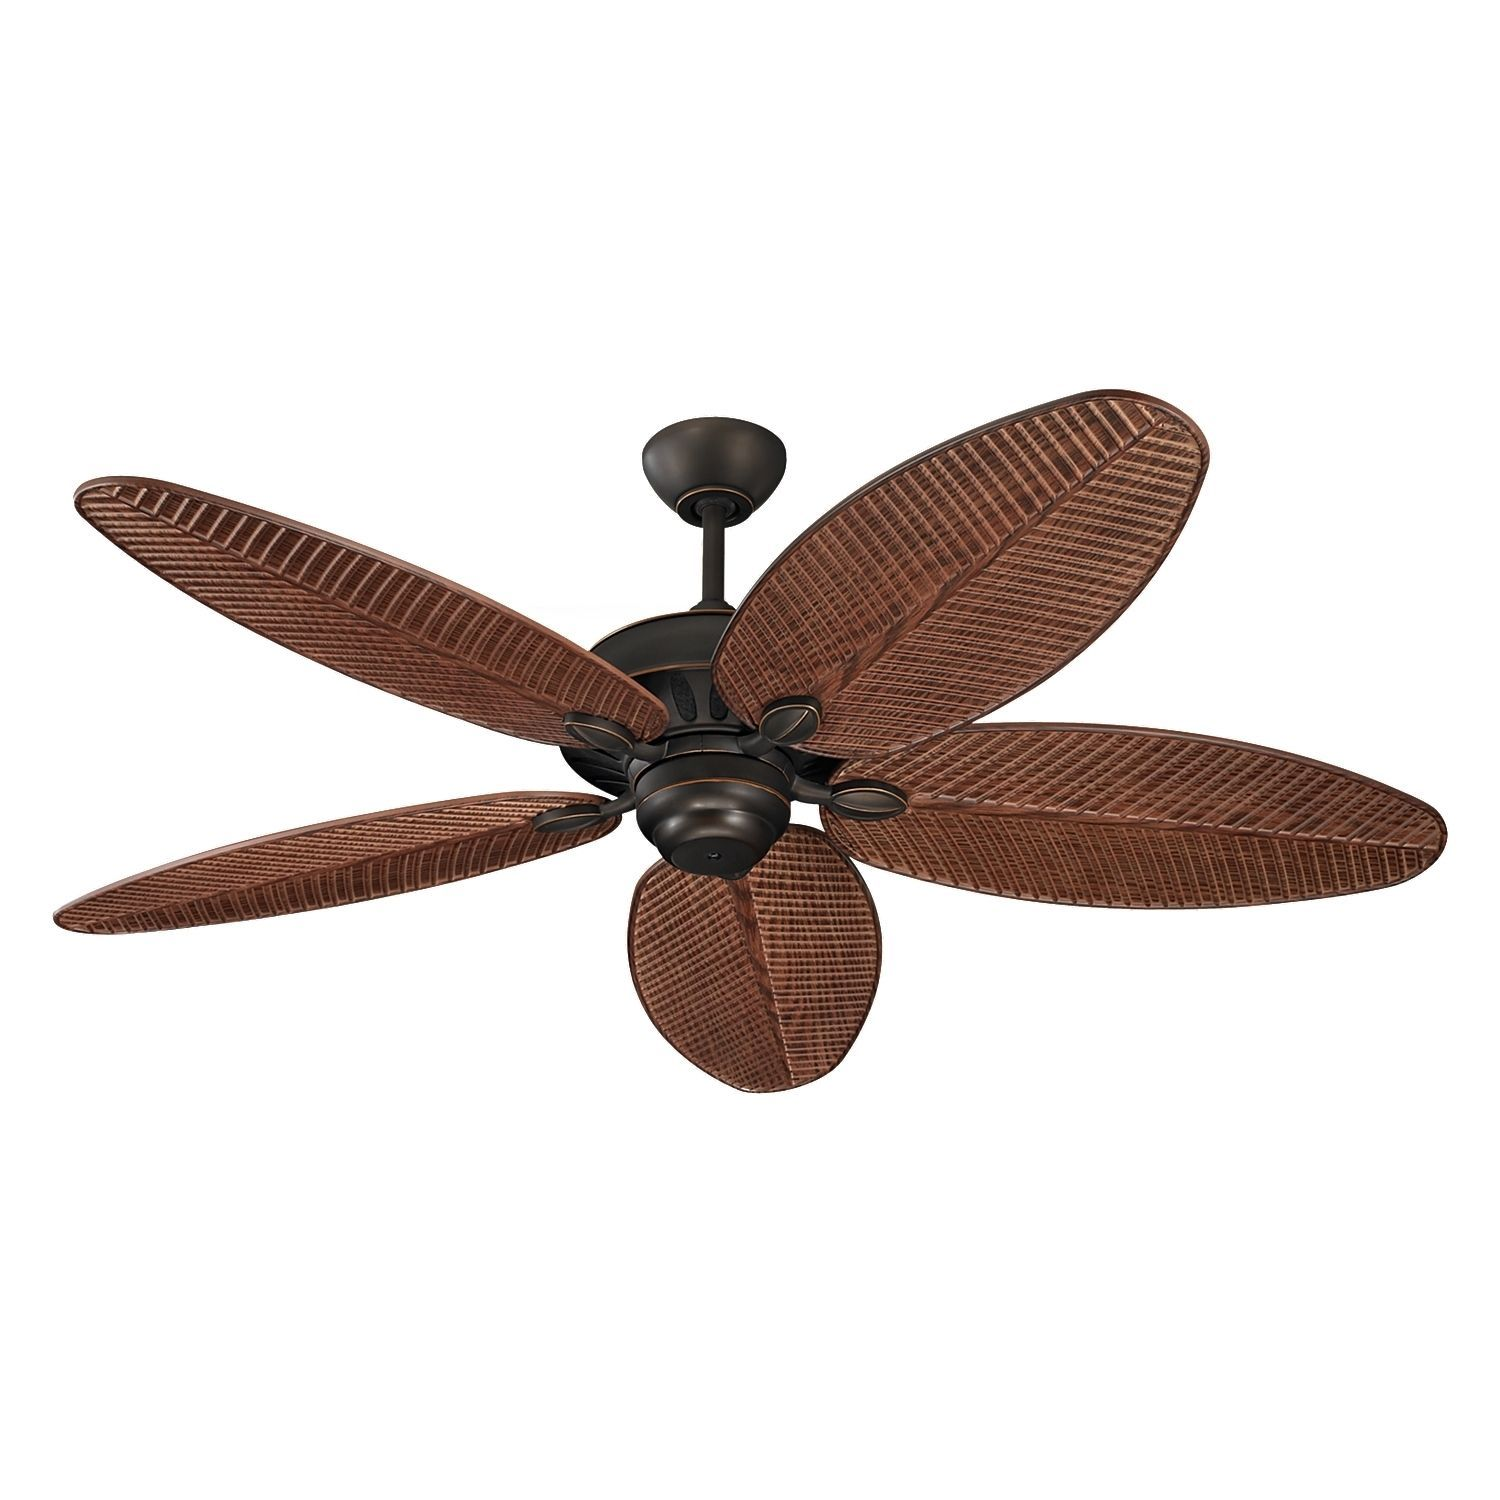 Overstock Com Online Shopping Bedding Furniture Electronics Jewelry Clothing More In 2020 Bronze Ceiling Fan Tropical Ceiling Fans Outdoor Fan